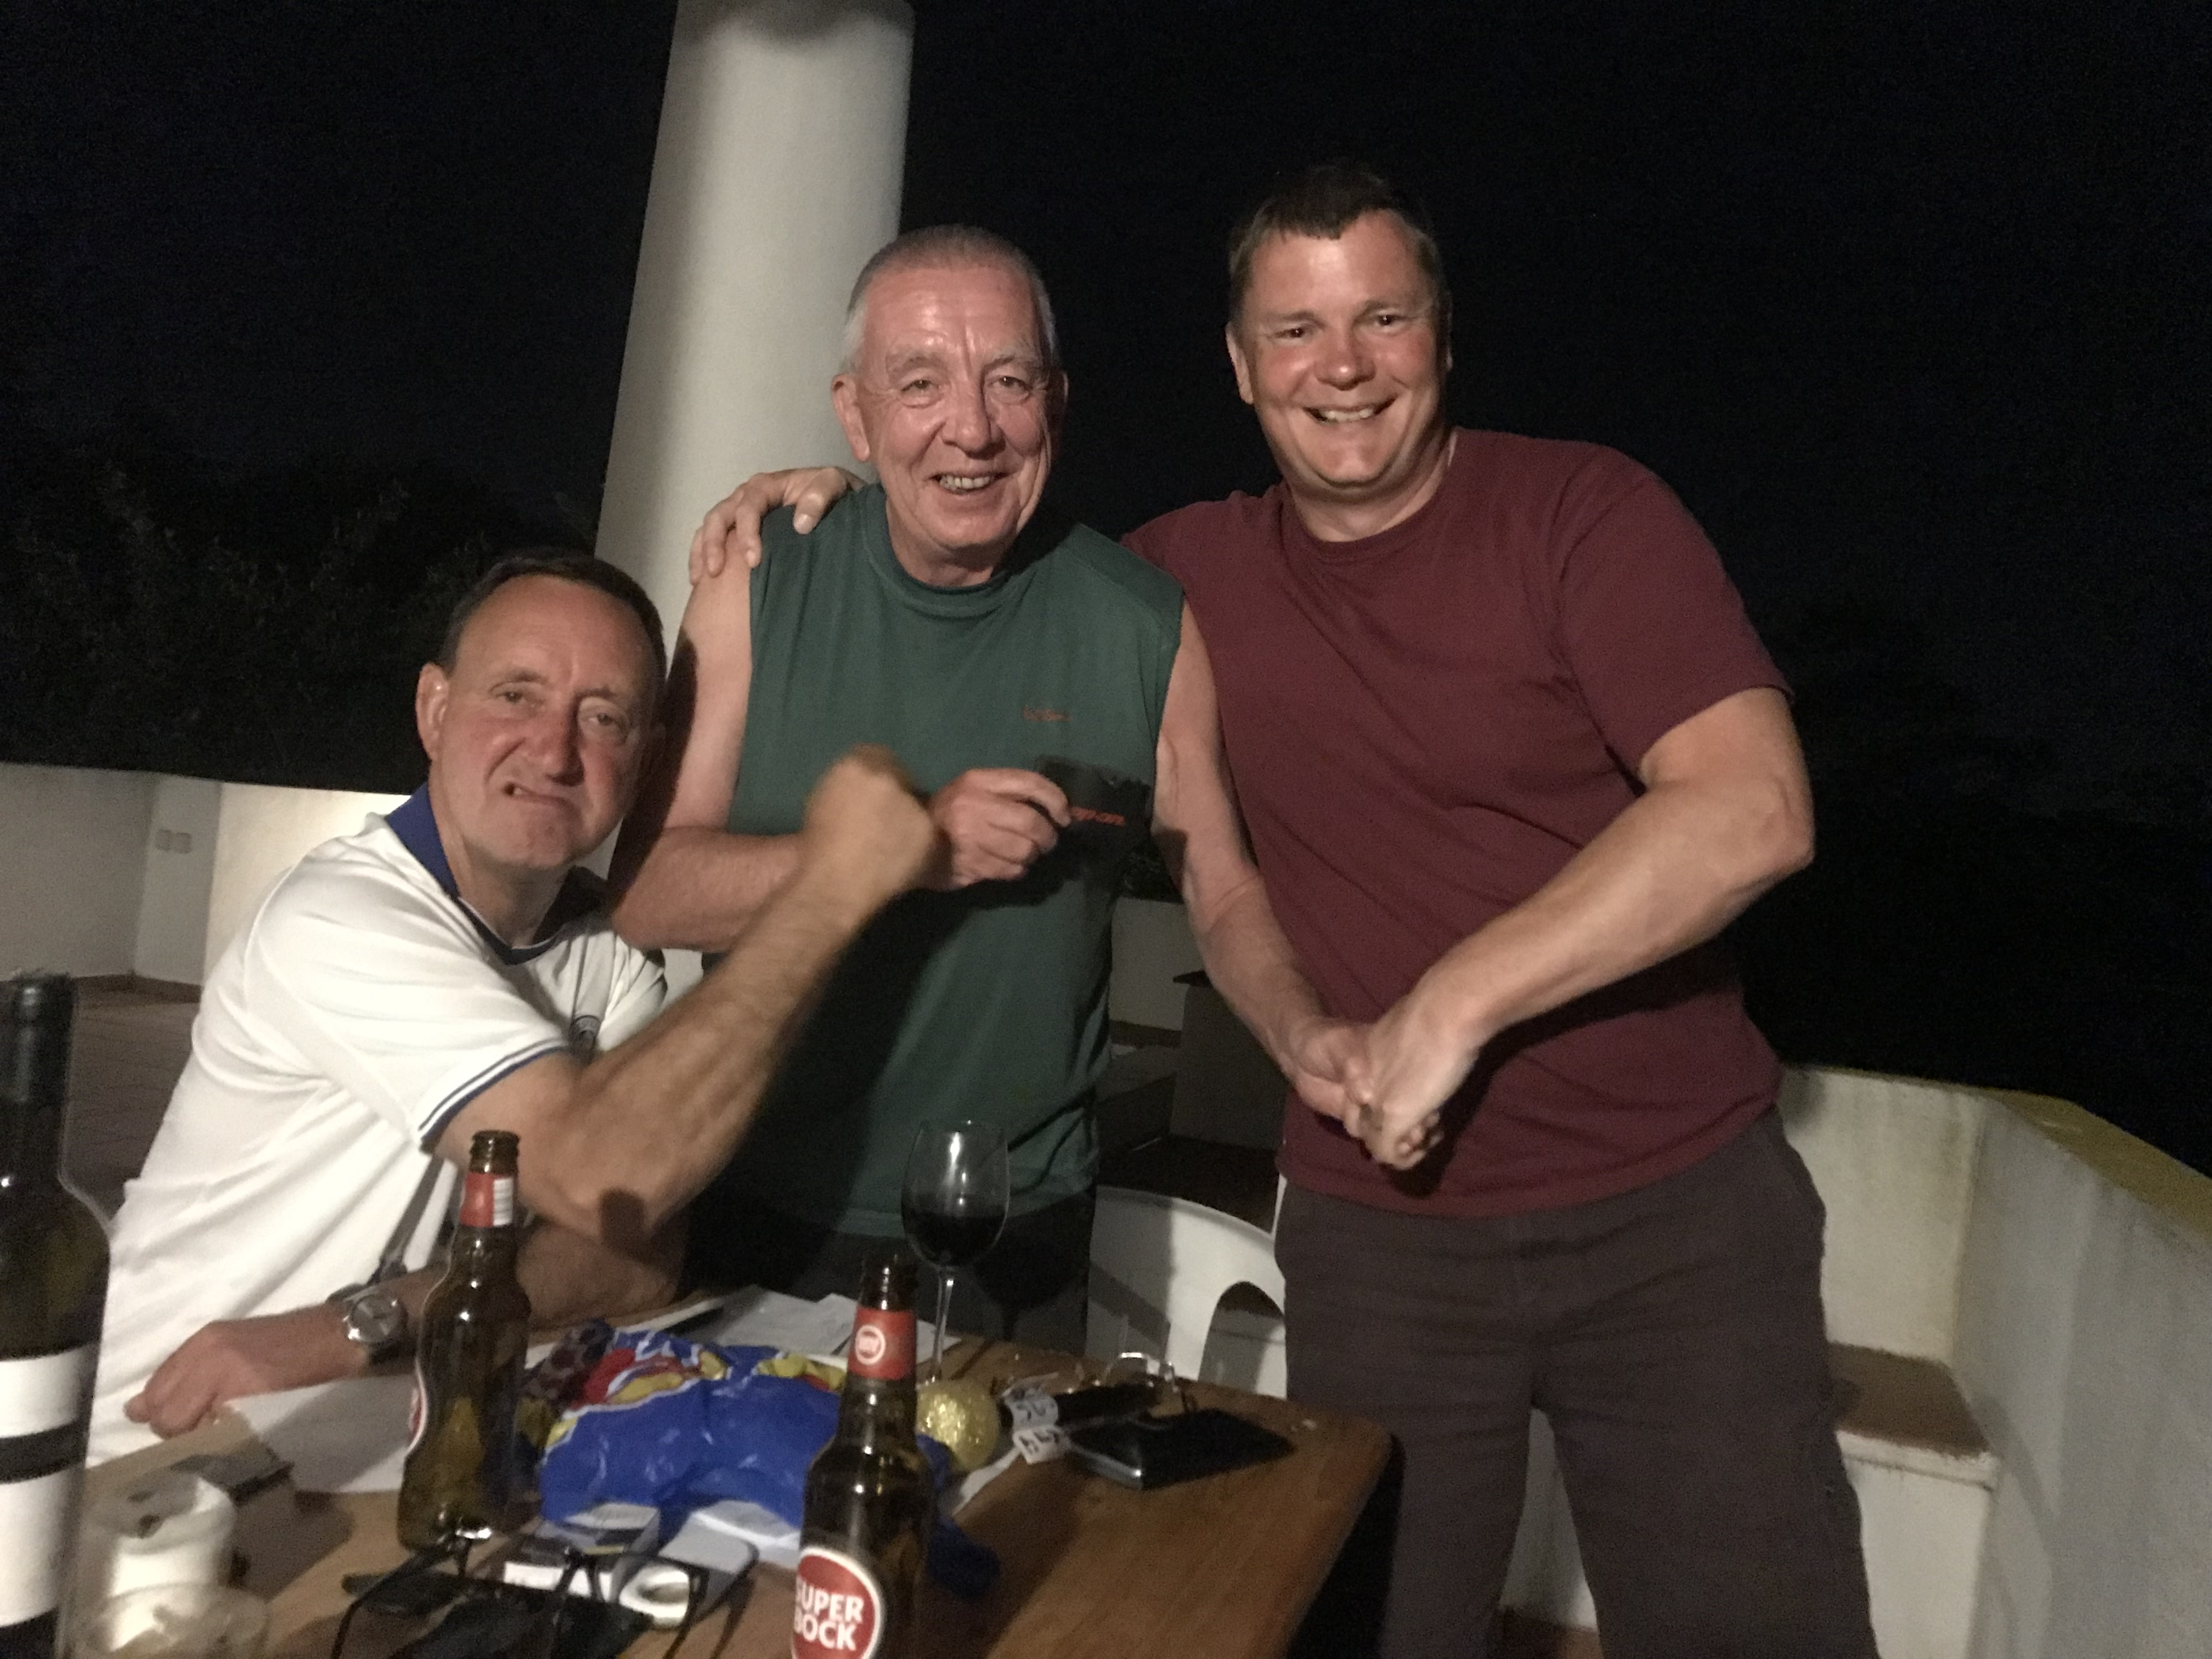 23-06-20 – Big Tony and The Chill Hit The Top !!!